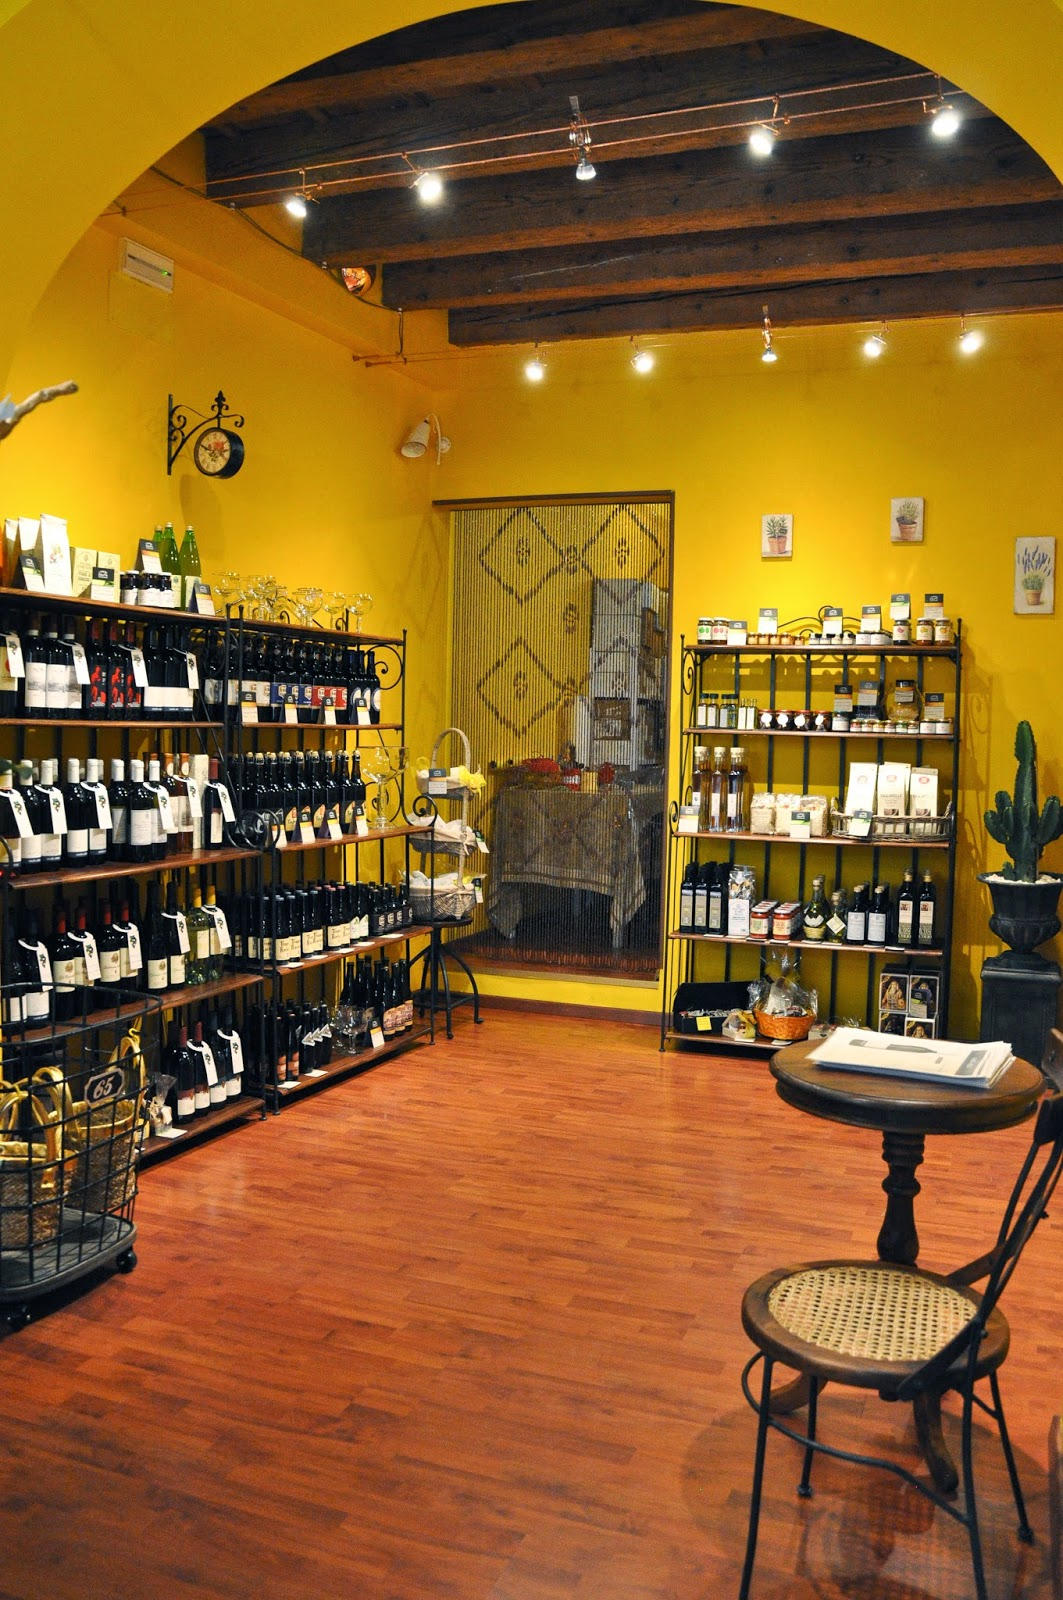 Inside L'Angolo Sublime - a charming shop in Vicenza selling artisan products made in Italian monasteries-2